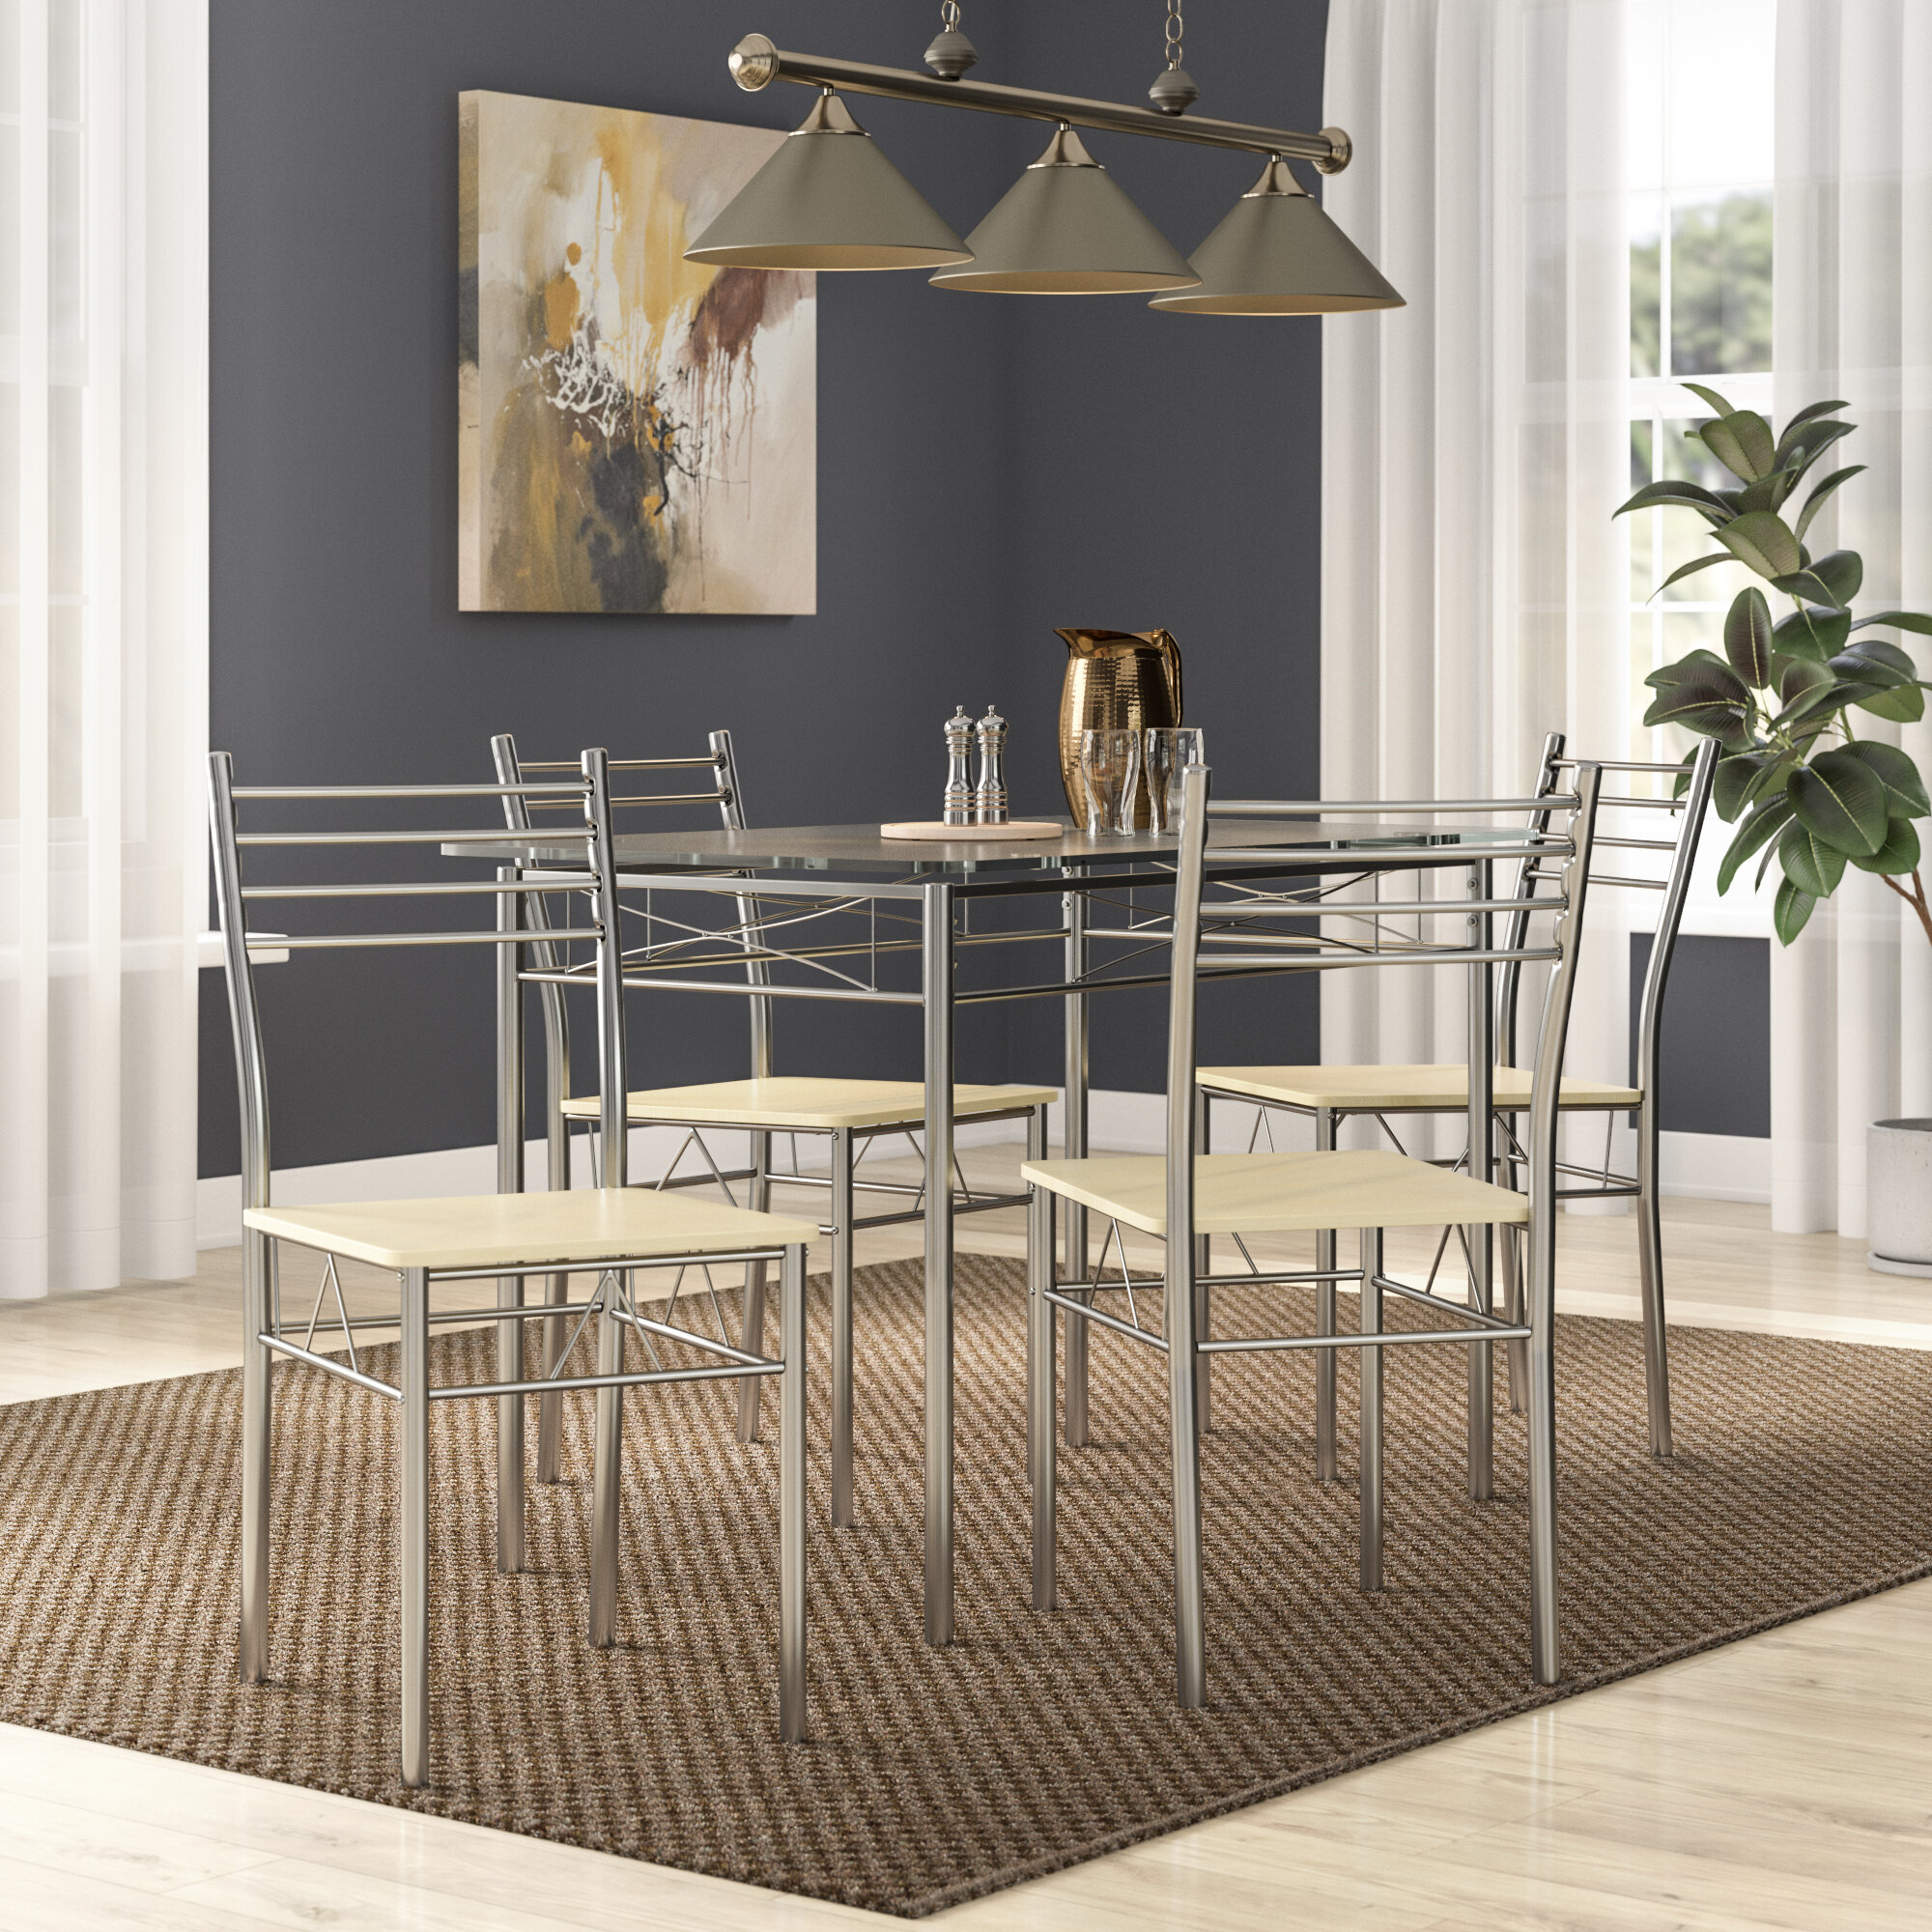 Zipcode Design North Reading 5 Piece Dining Table Set & Reviews Throughout Favorite North Reading 5 Piece Dining Table Sets (#20 of 20)